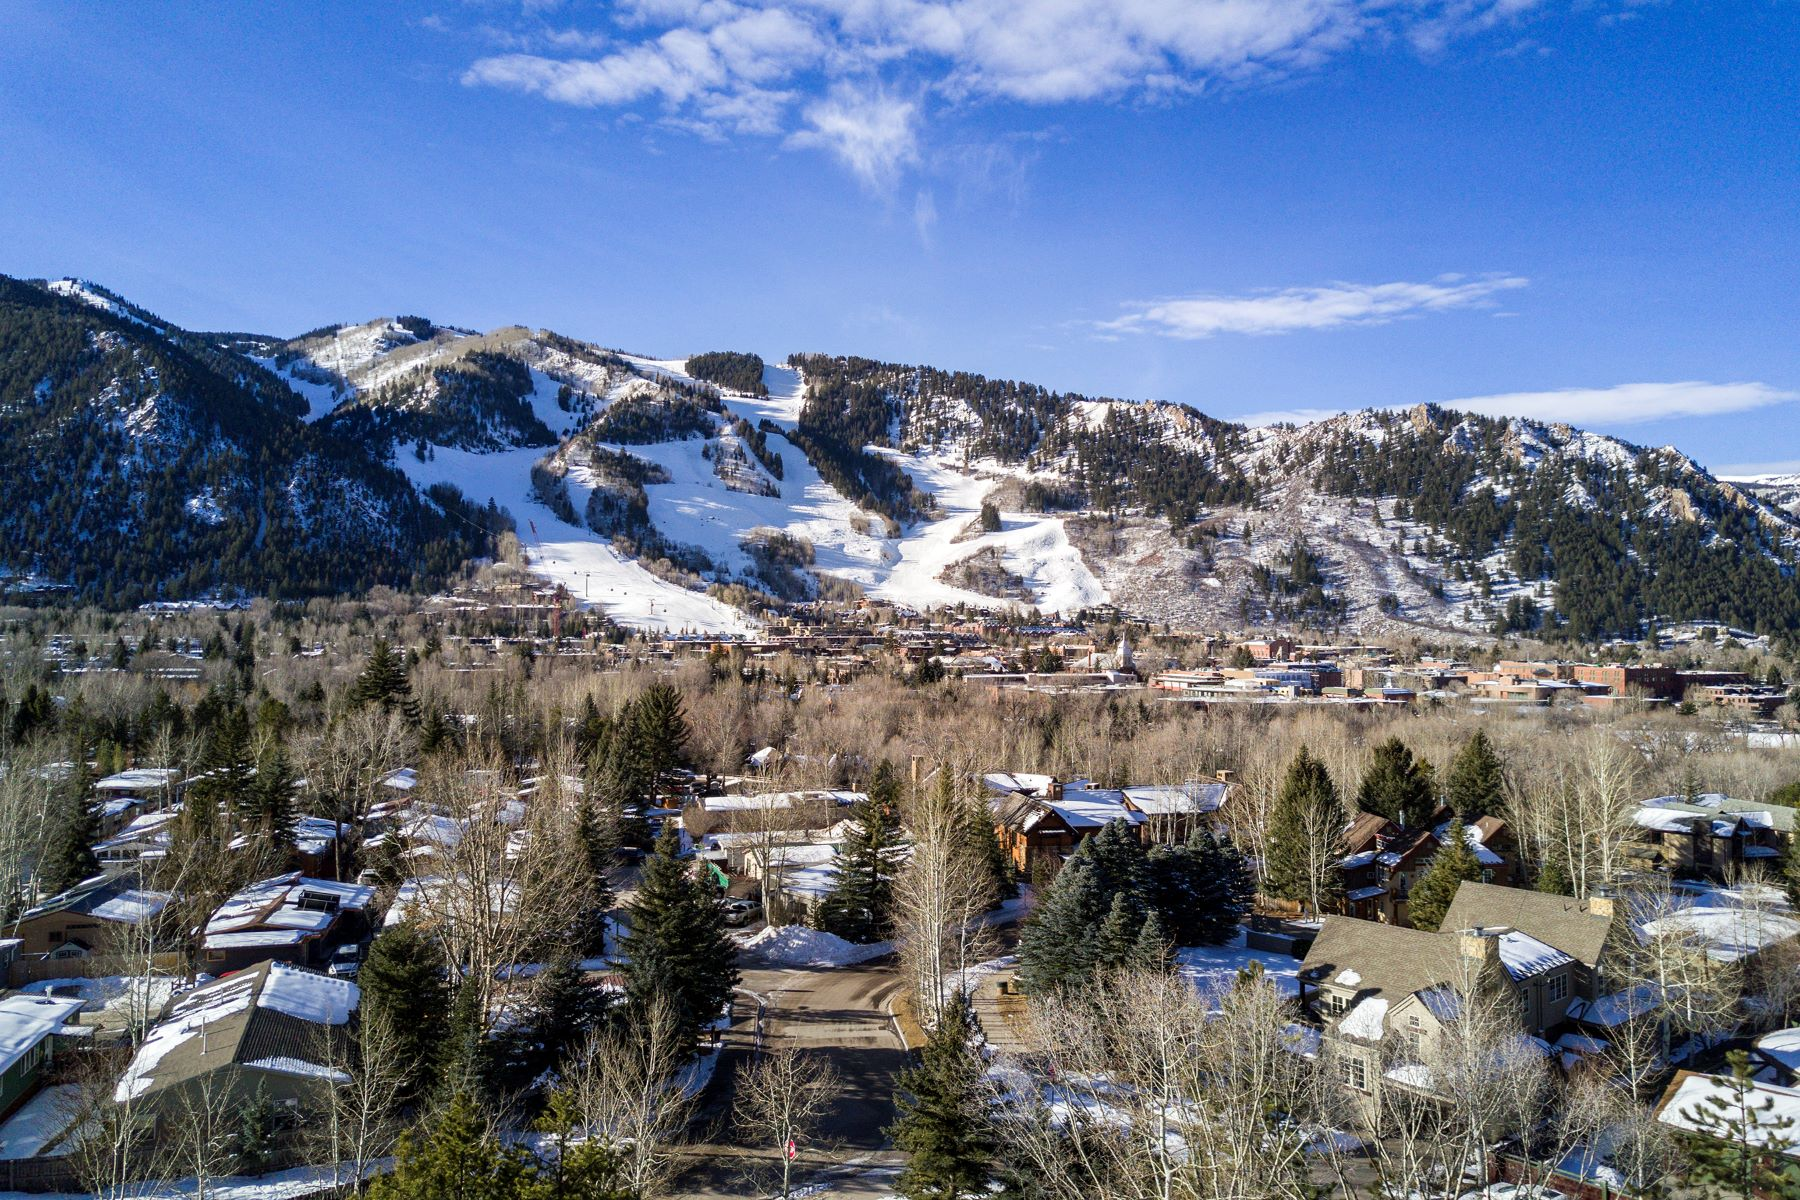 Townhouse for Sale at Spruce Street Townhome 522 Spruce Street Aspen, Colorado 81611 United States